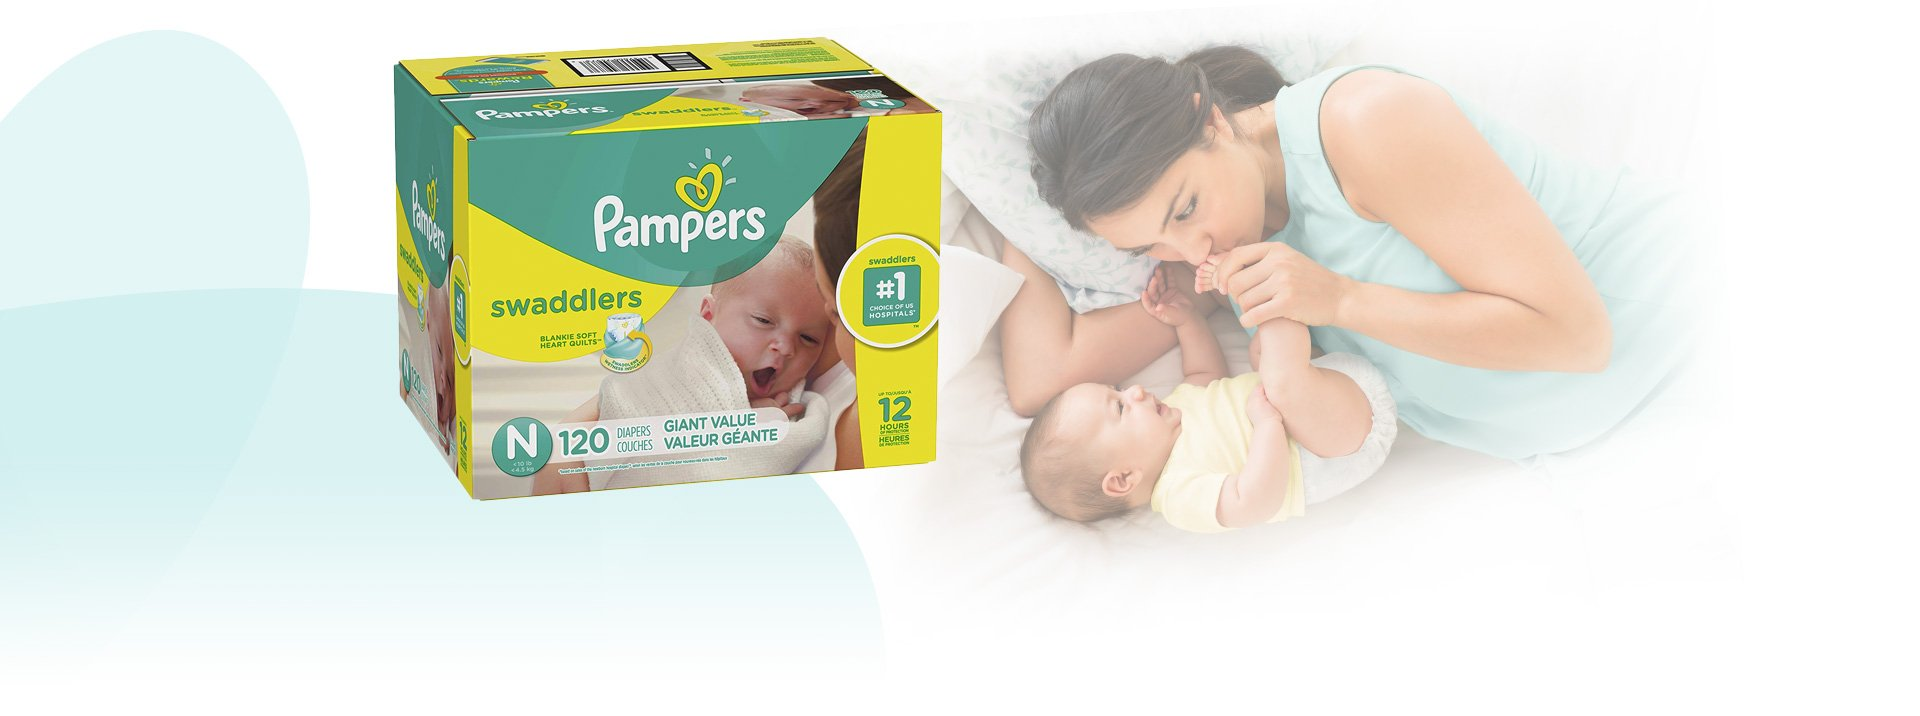 Pampers Swaddlers Disposable Diapers Size Newborn, 120 Count by Pampers (Image #2)